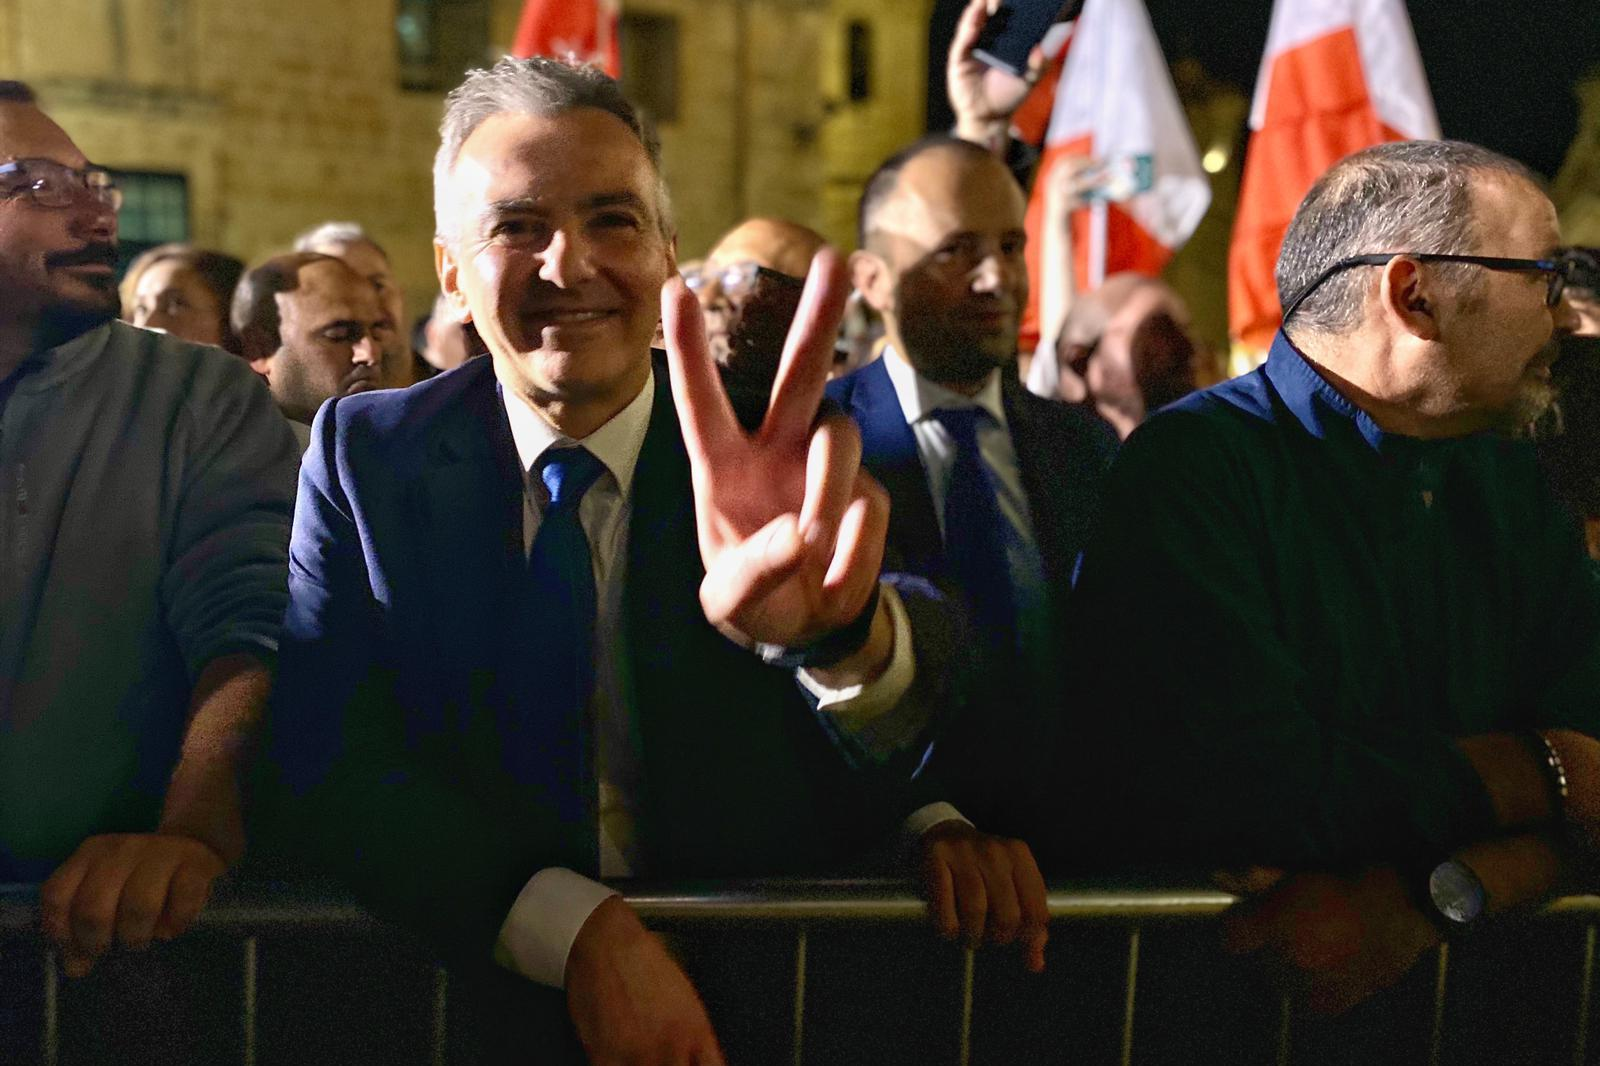 Simon Busuttil at a protest held last week.